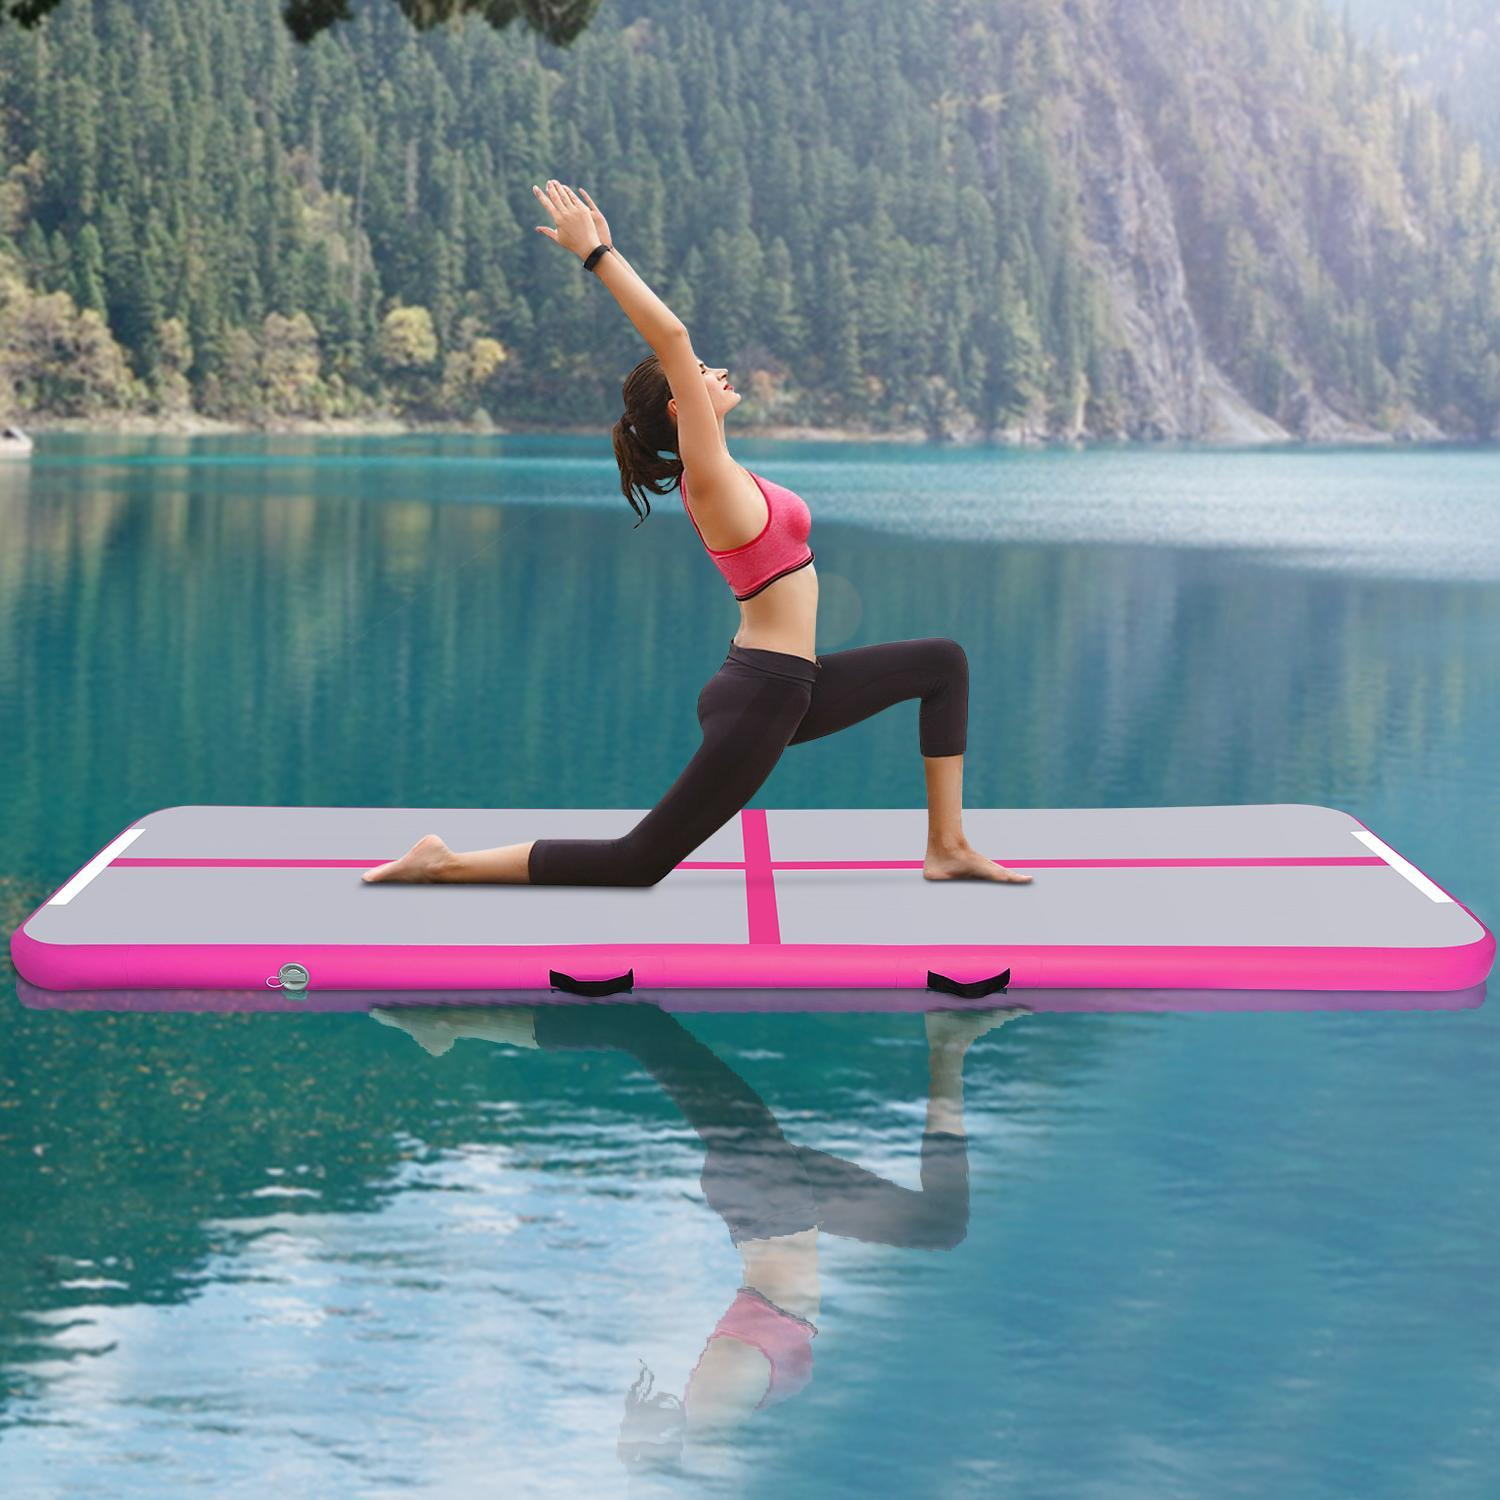 Home Training Equipment  Inflatable Air Tumble Track  Inflatable Gymnastics Air Mat STDTE